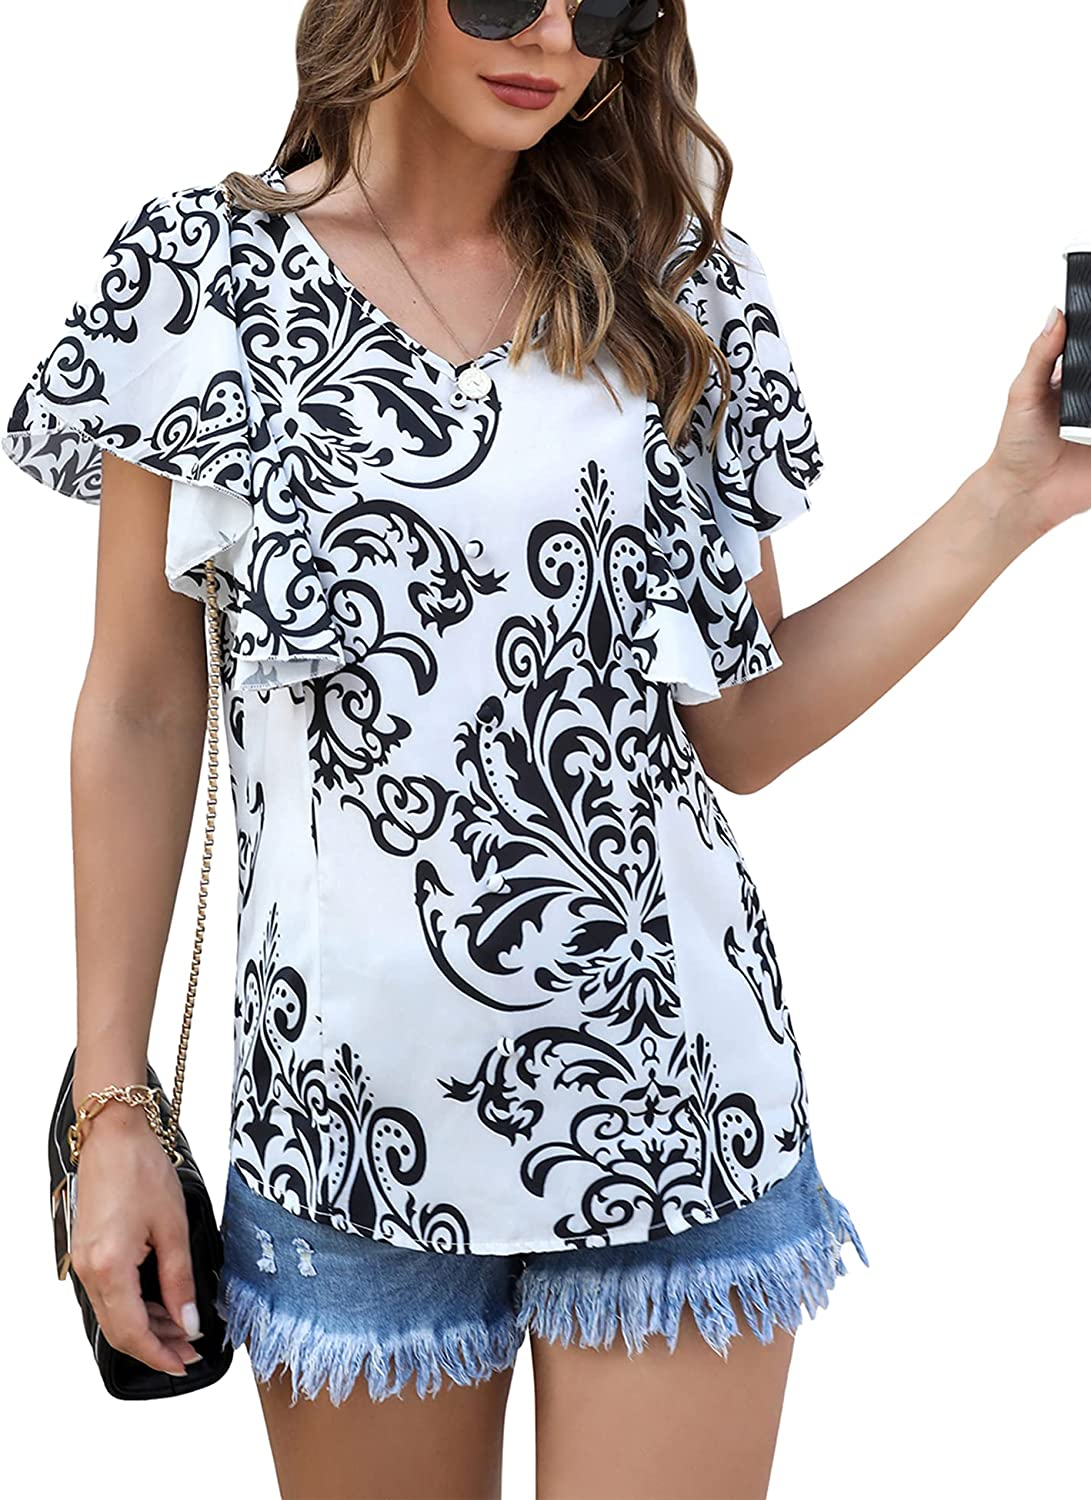 Irevial Womens Summer Chiffon Blouses V Neck Floral Tops Ruffle Button Trim Tunic Shirts